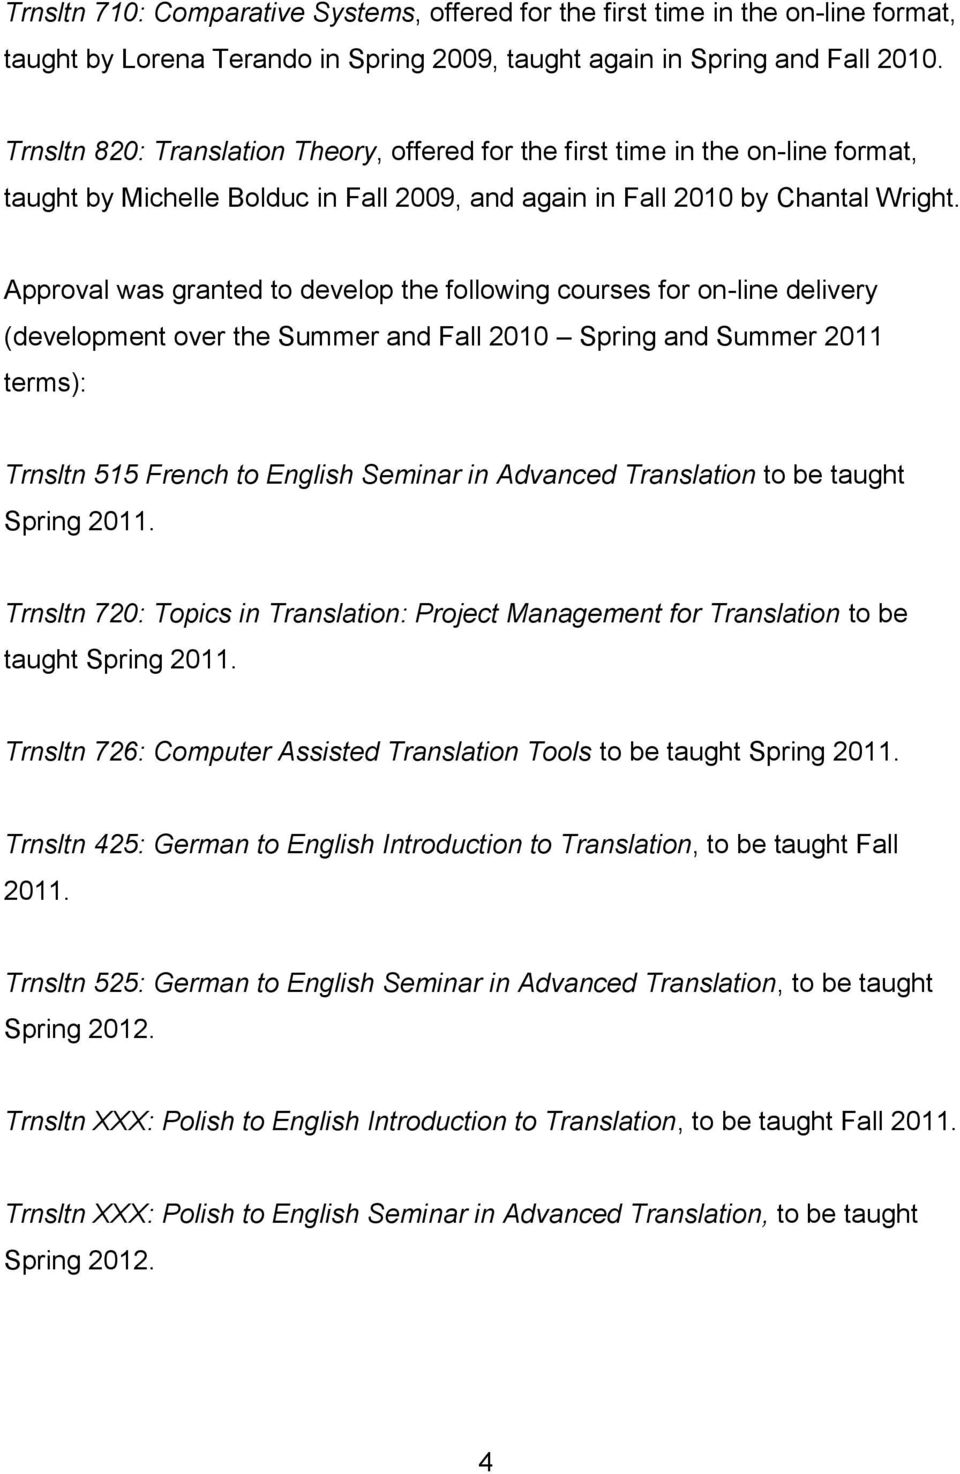 Approval was granted to develop the following courses for on-line delivery (development over the Summer and Fall 2010 Spring and Summer 2011 terms): Trnsltn 515 French to English Seminar in Advanced